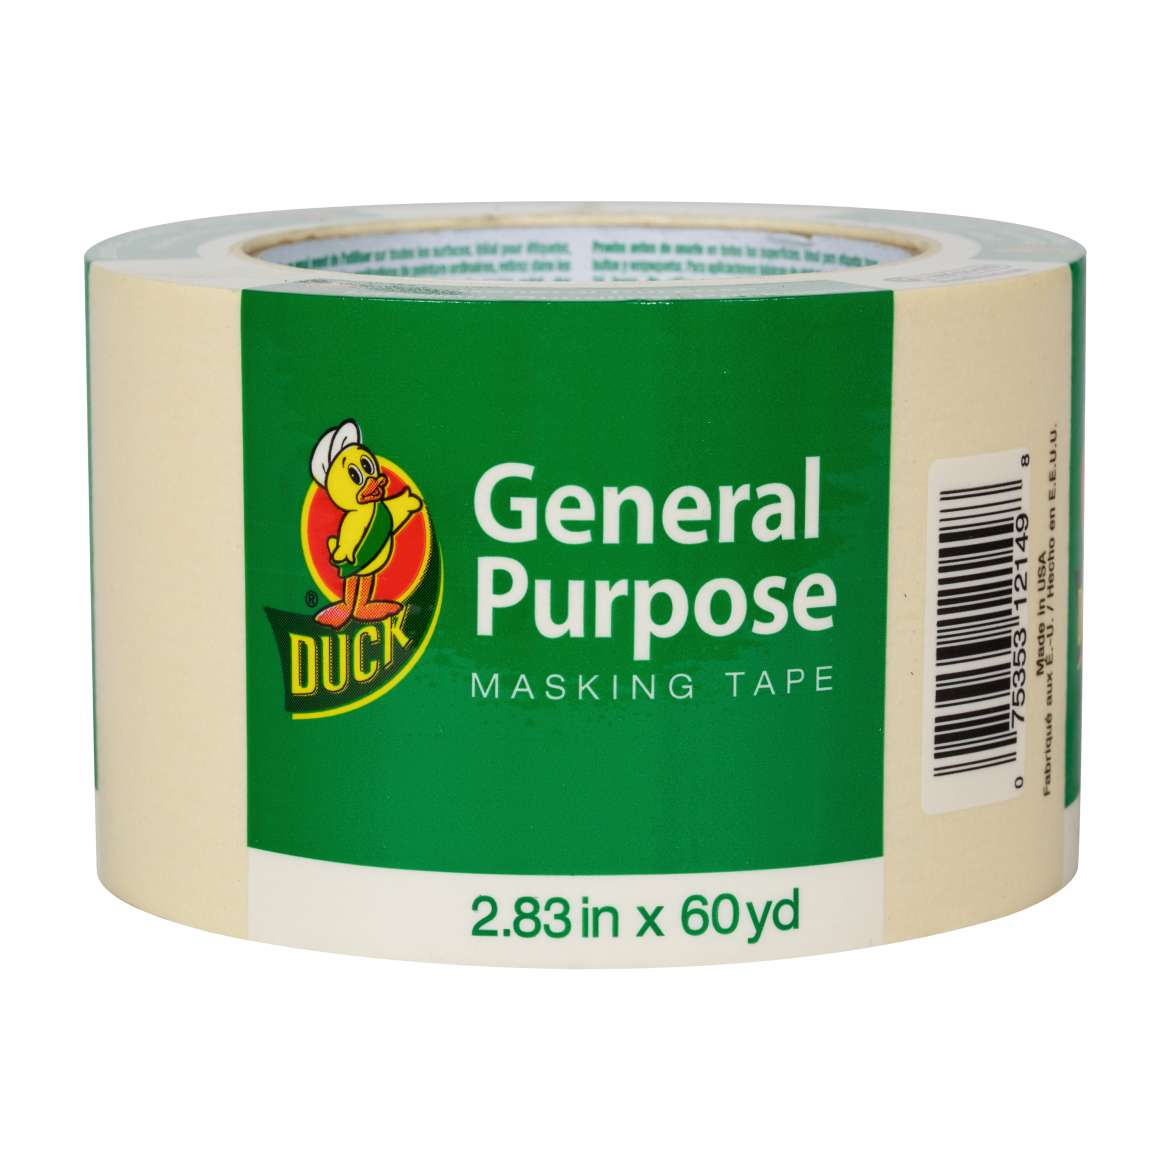 Duck® Brand General Purpose Masking Tape - Beige, 2.83 in. x 60 yd. Image